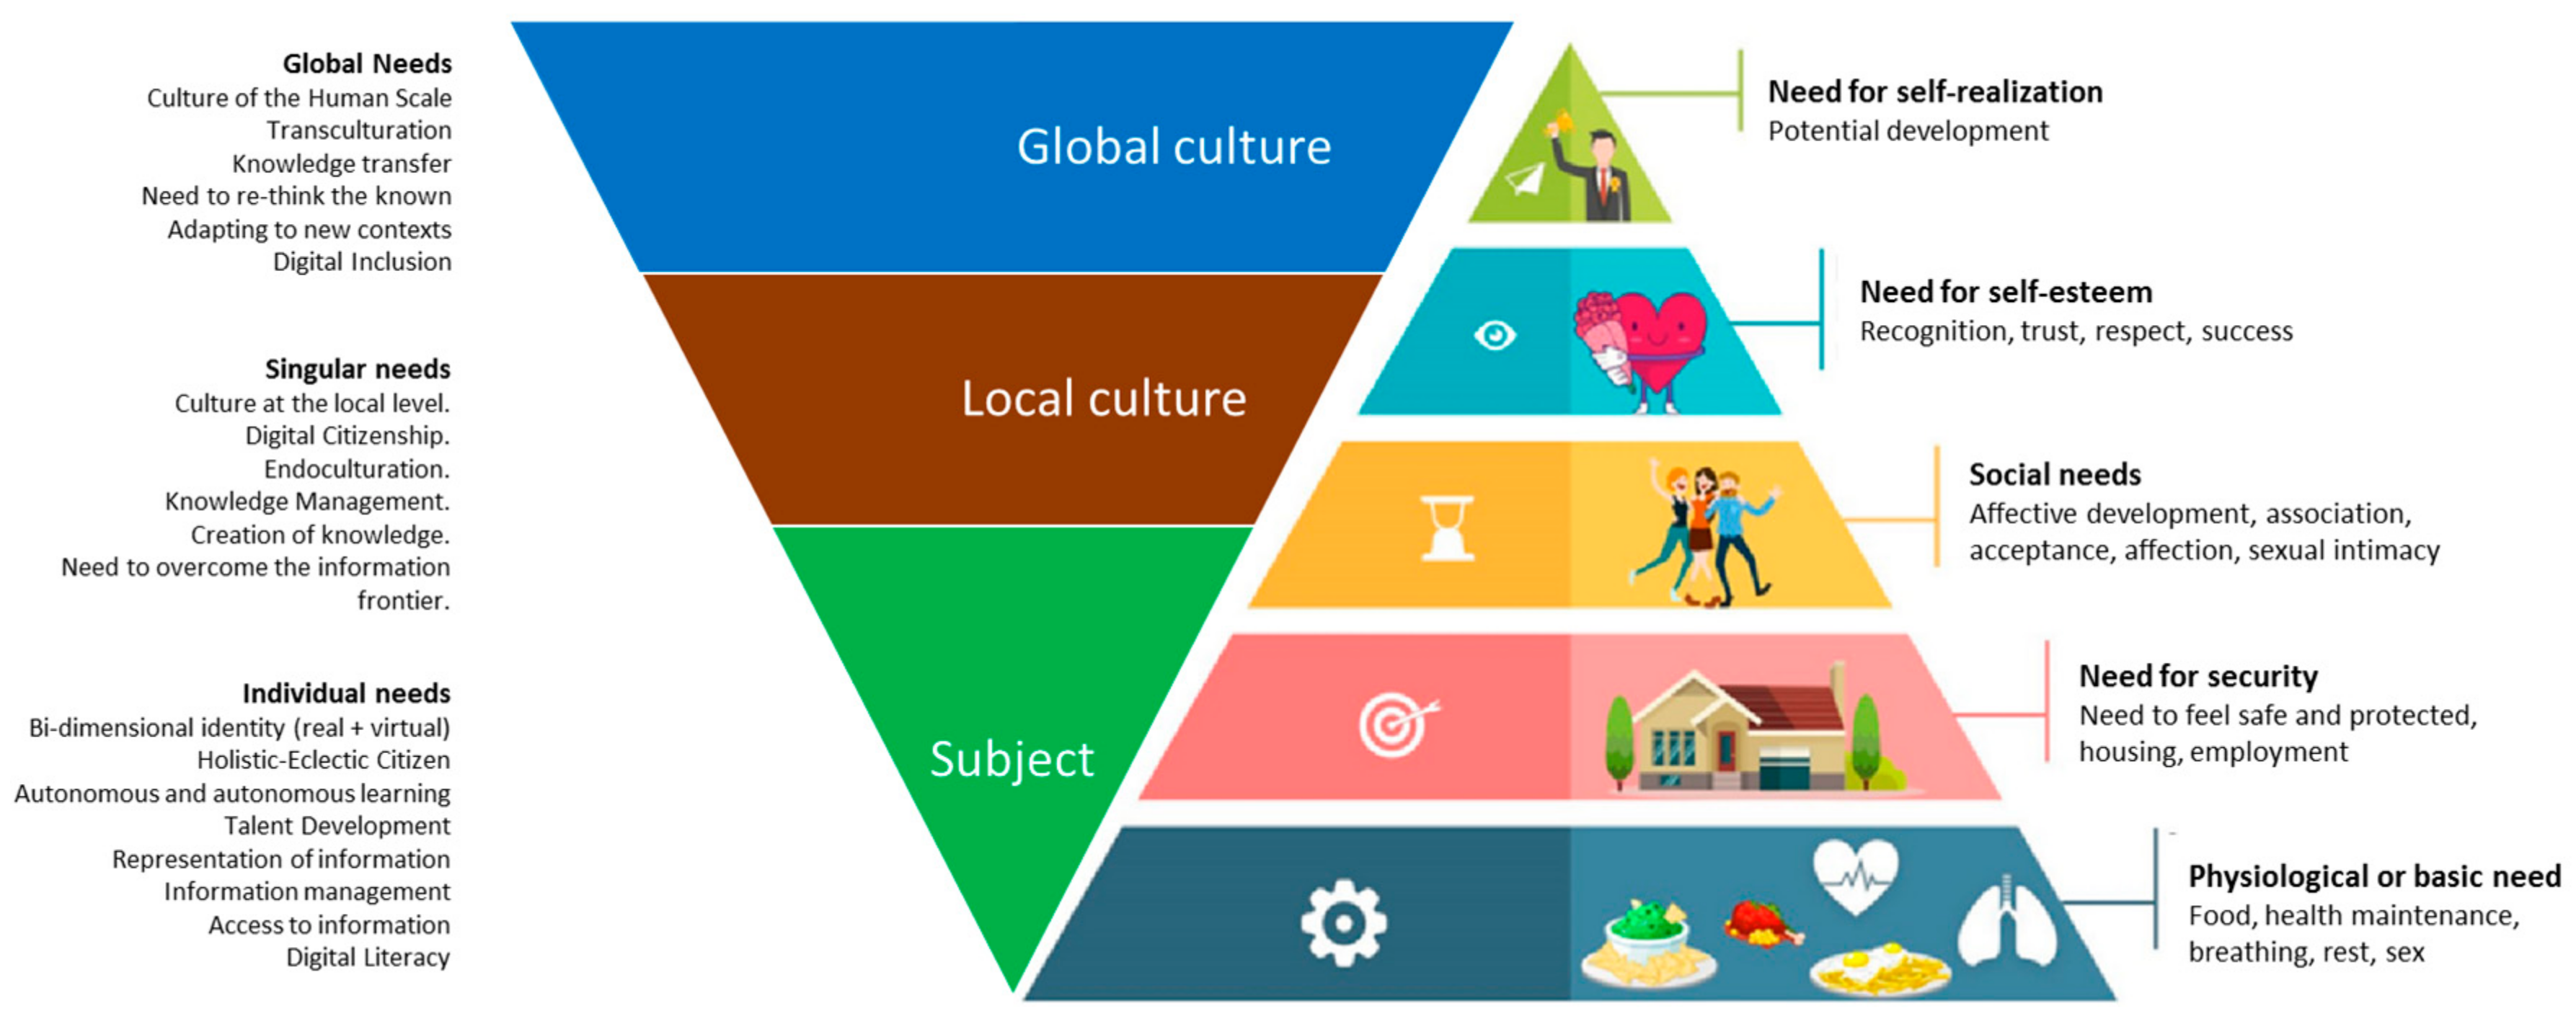 Sustainability Free Full Text The New Pyramid Of Needs